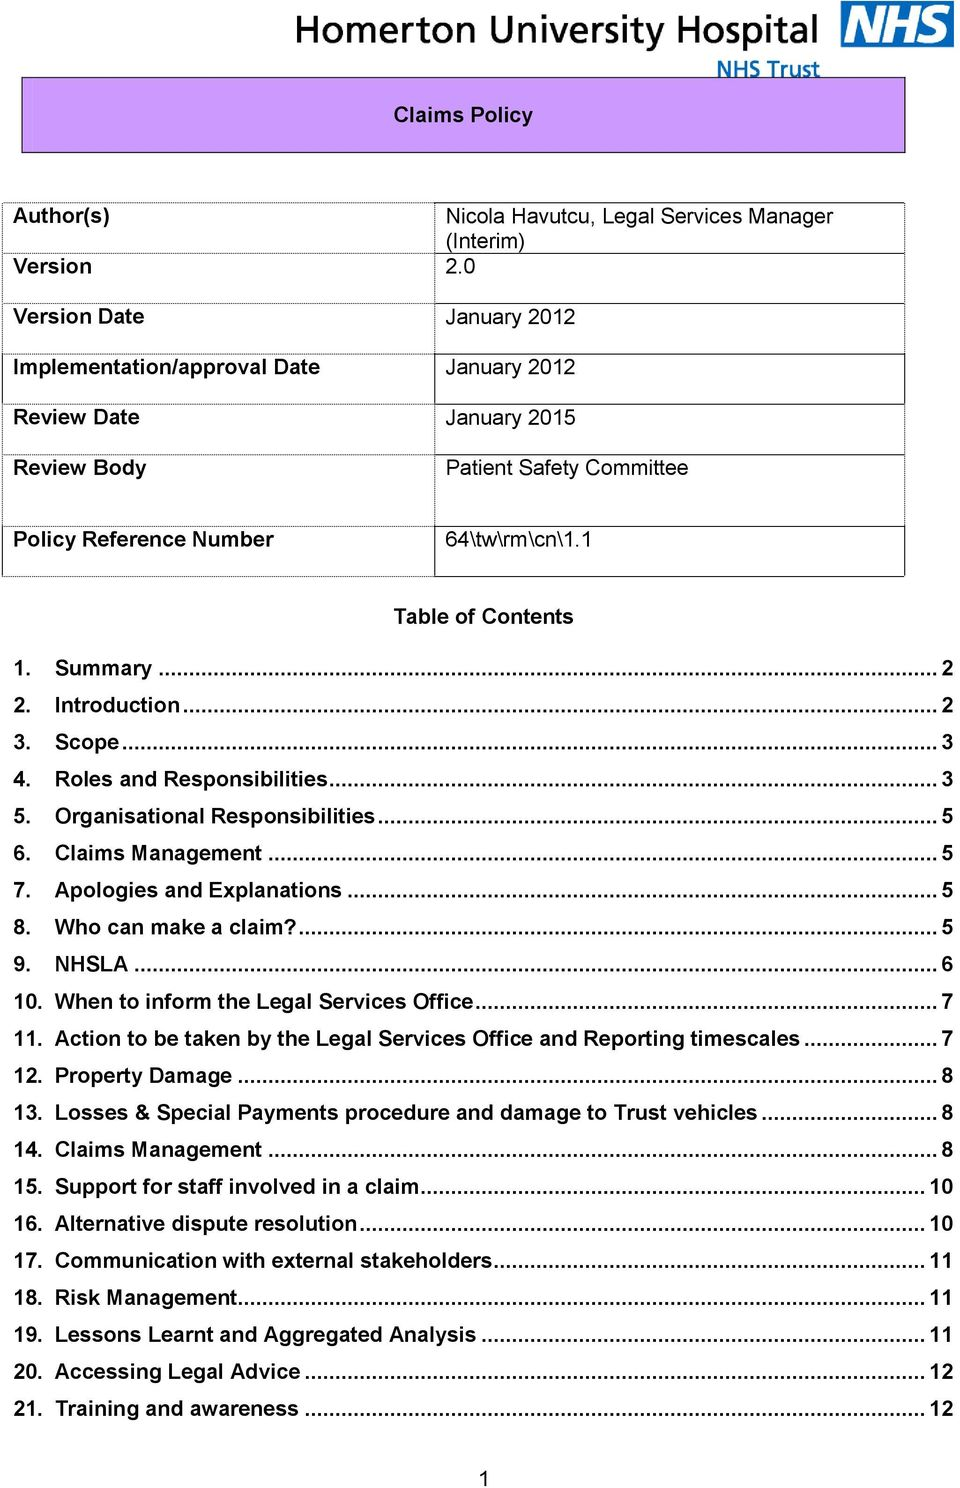 Summary... 2 2. Introduction... 2 3. Scope... 3 4. Roles and Responsibilities... 3 5. Organisational Responsibilities... 5 6. Claims Management... 5 7. Apologies and Explanations... 5 8.